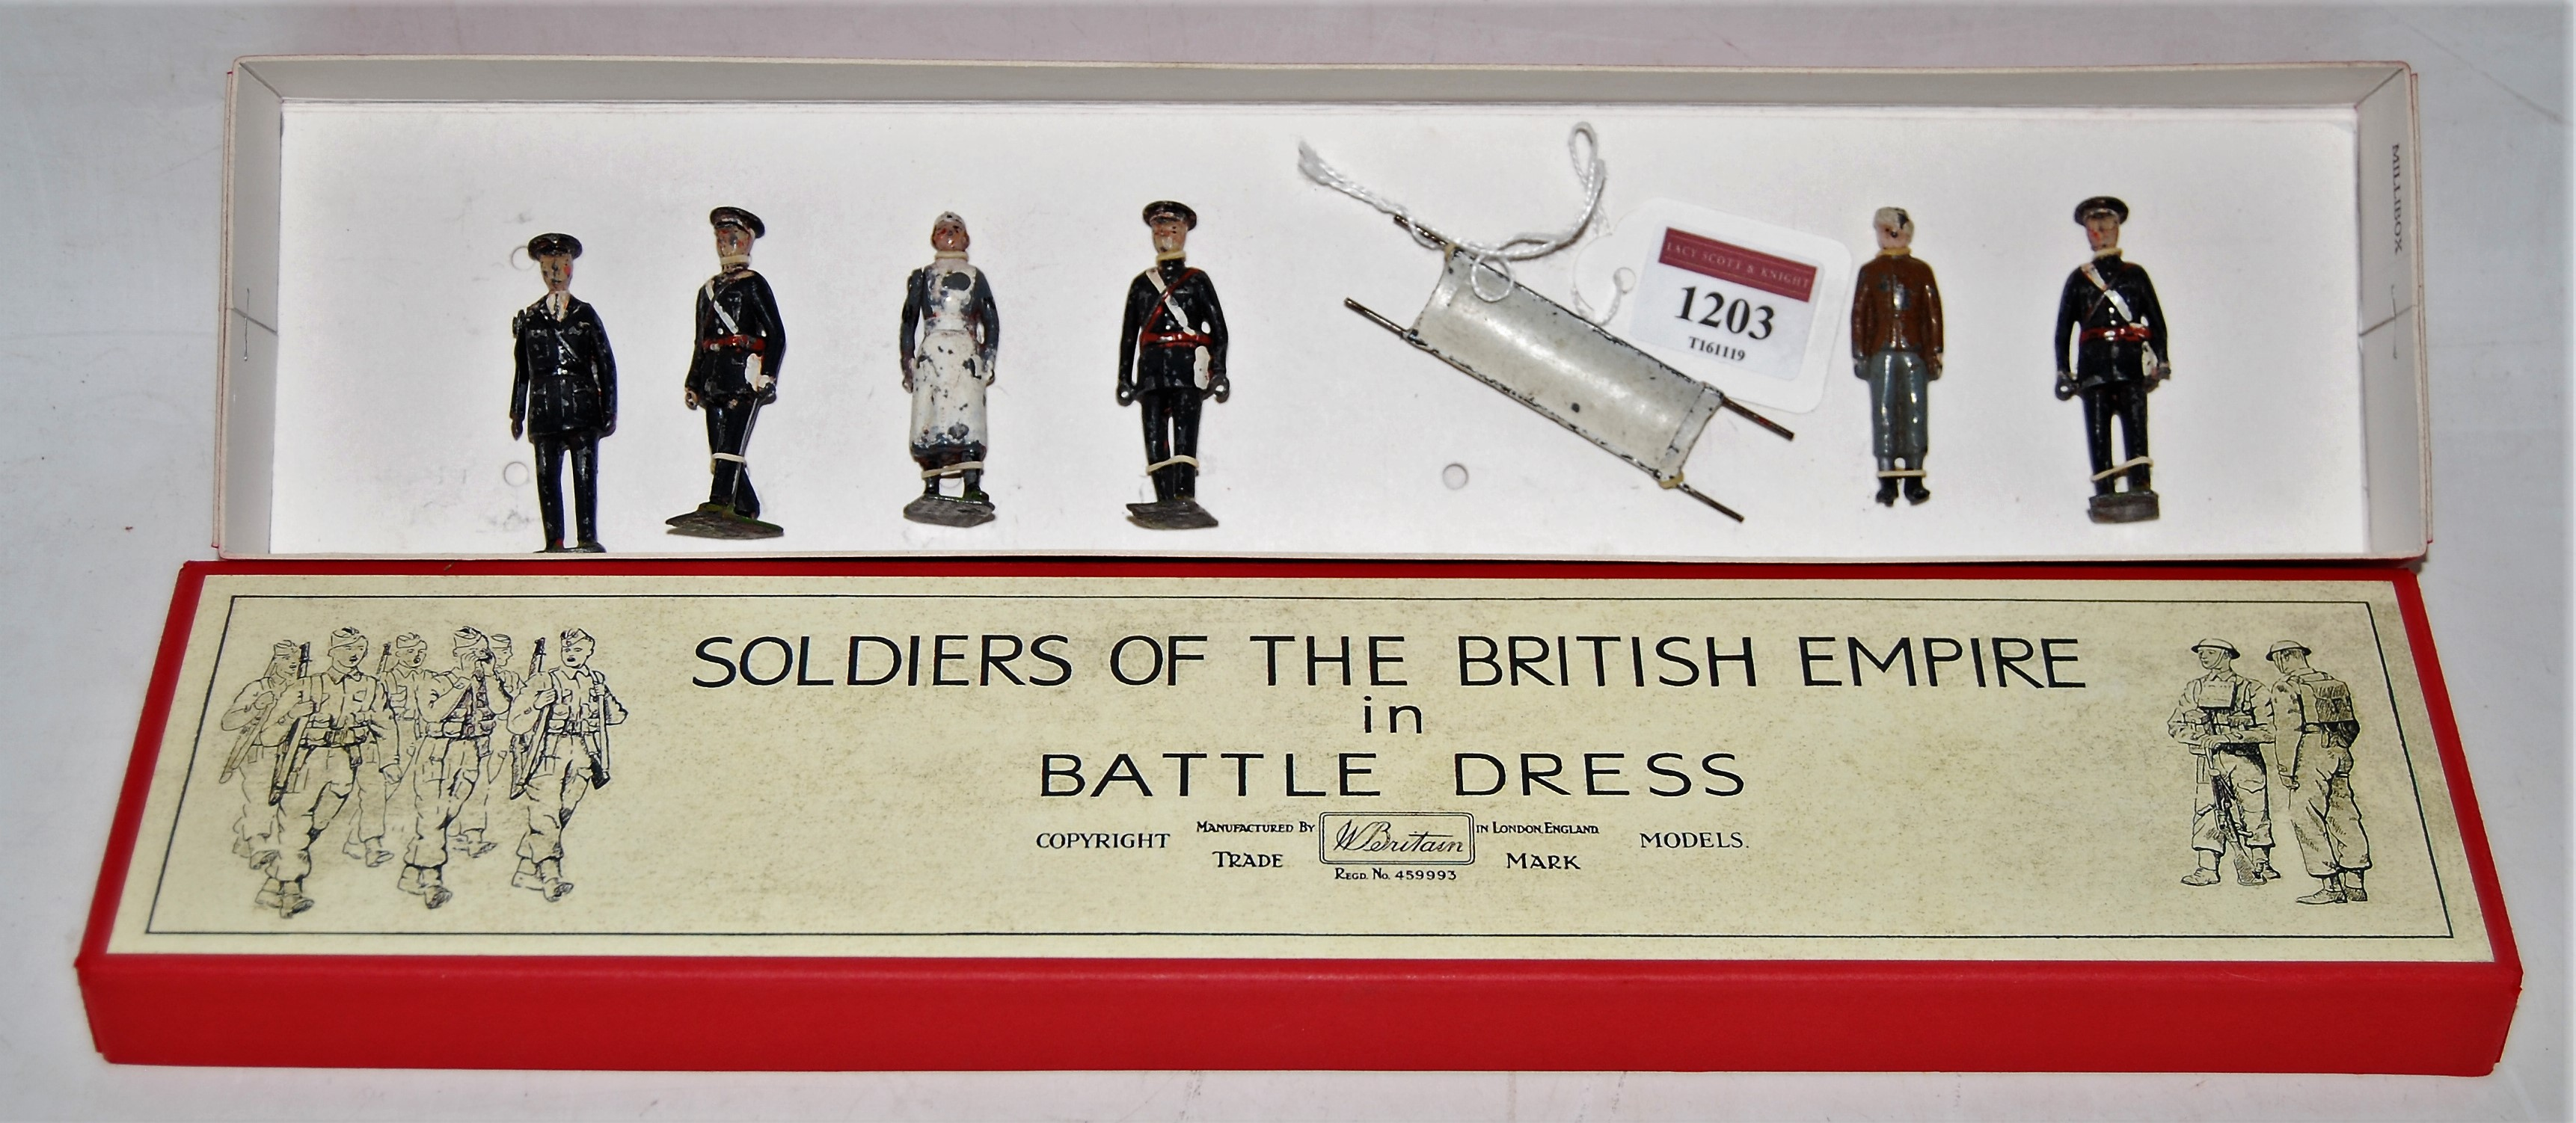 A Britains from set 1426 St John's Ambulance Brigade figure group comprising of two stretcher